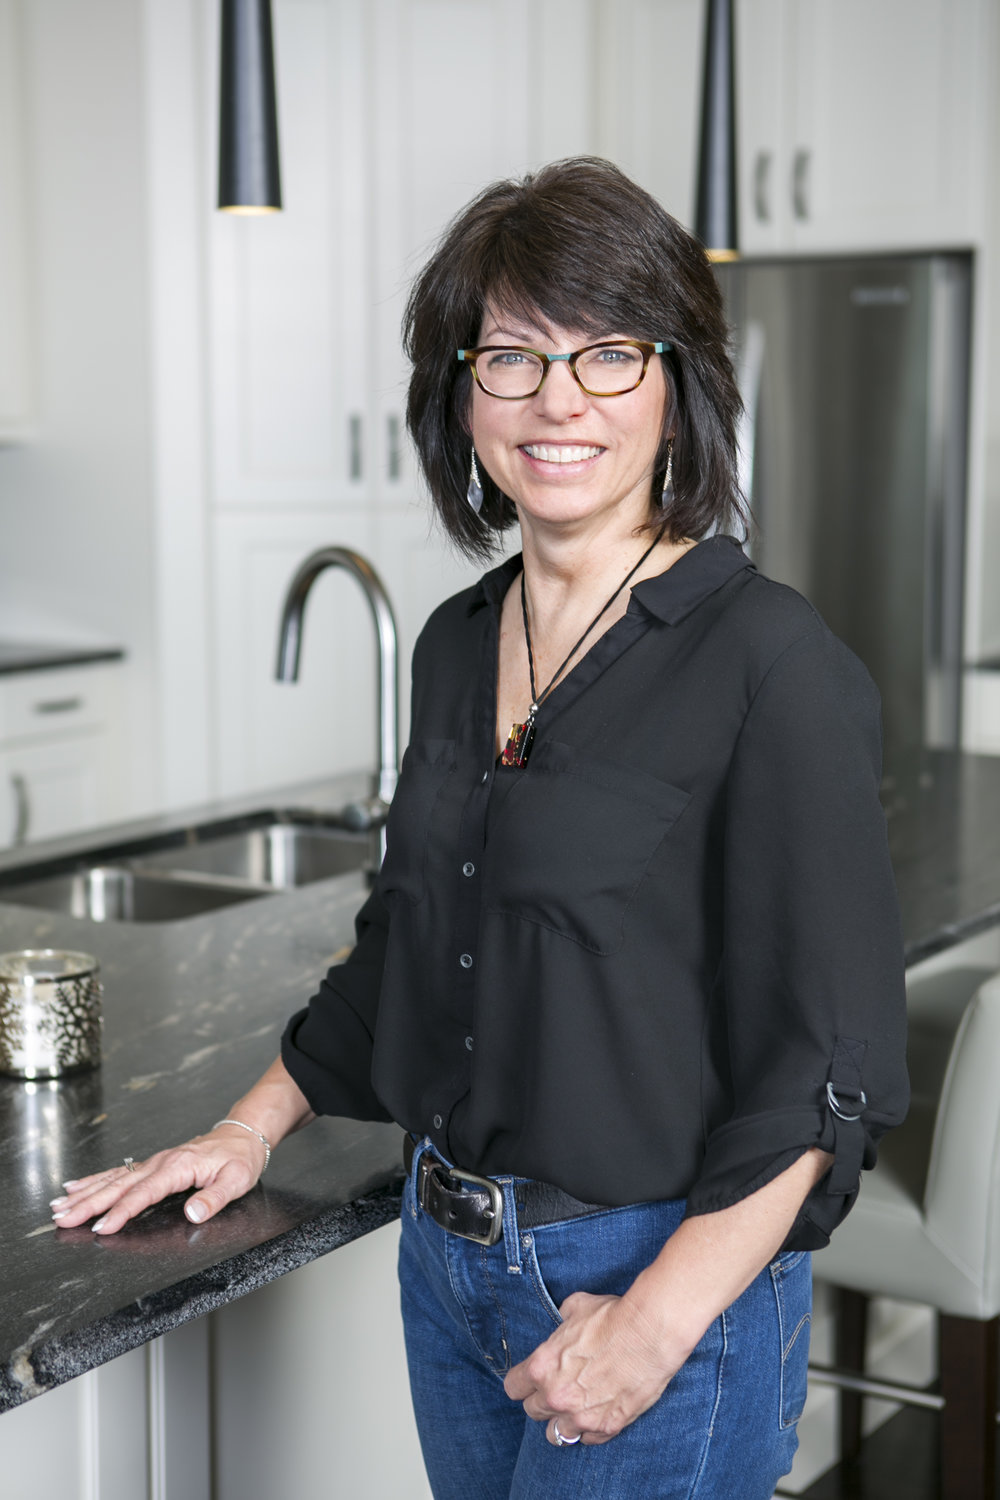 - Wendy was raised by a single mom who turned to real estate to make ends meet in her home city of Montreal. Have abundance experience in marketing and communication.